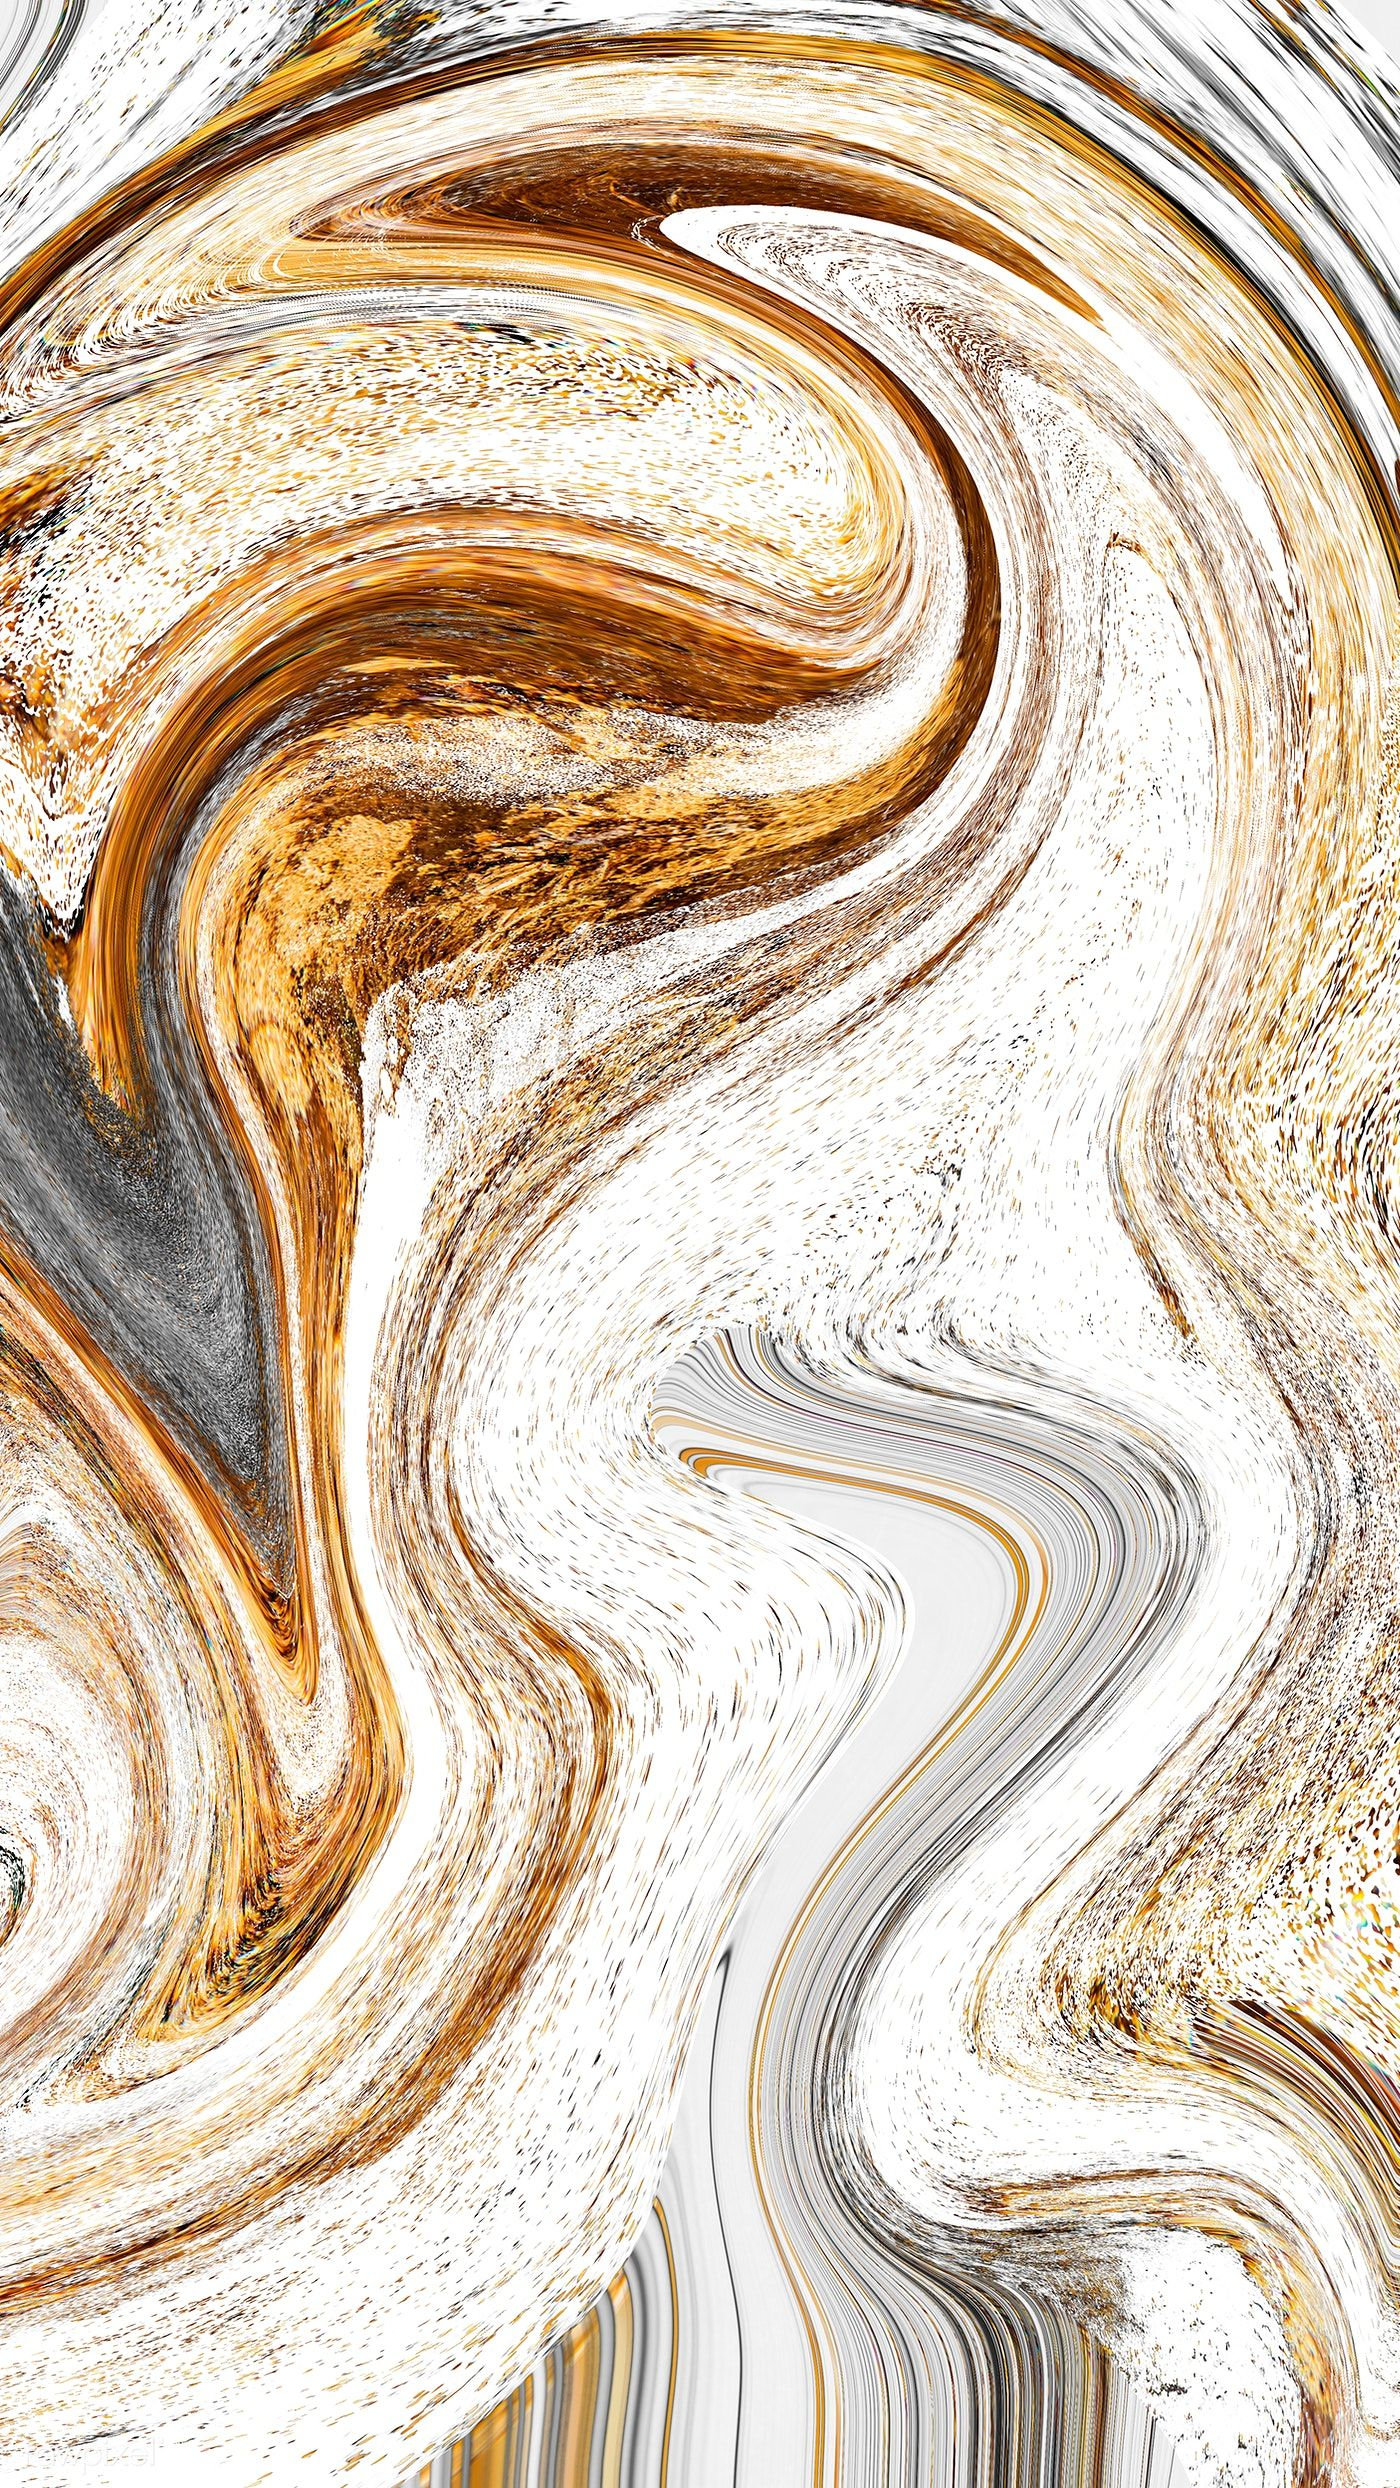 Download premium illustration of Marble texture with gold and gray swirls